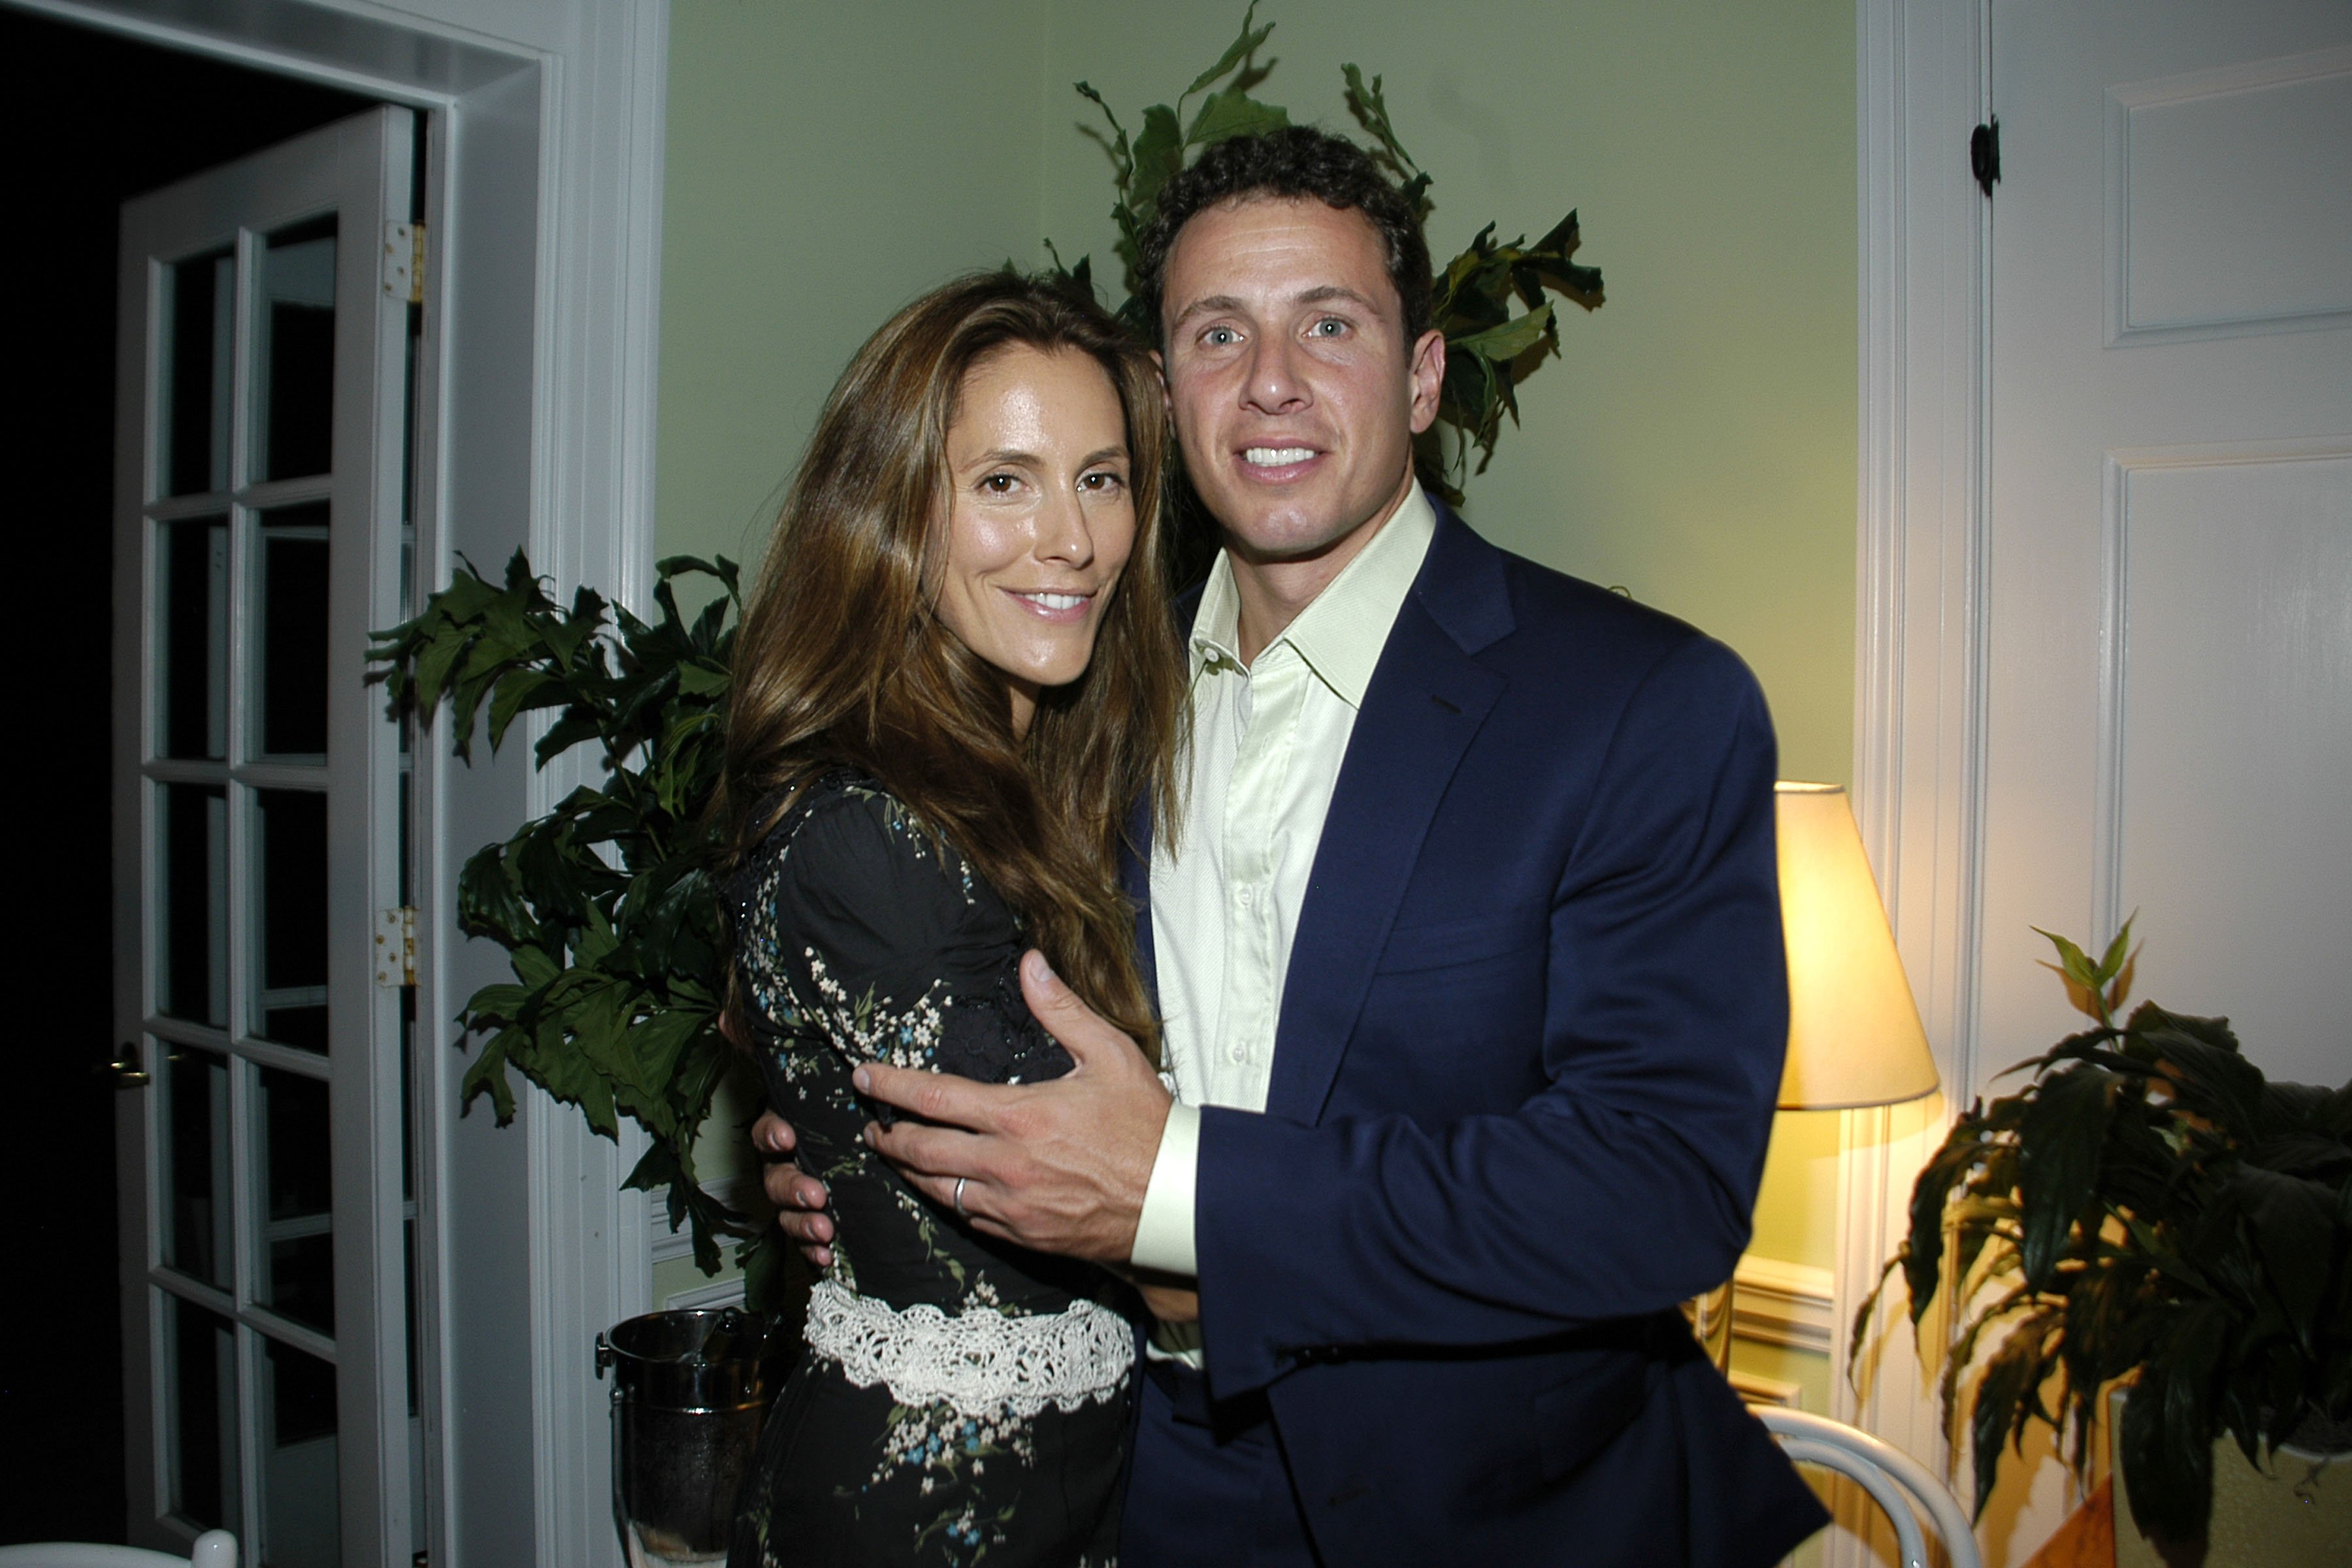 Cristina Greeven Cuomo and Chris Cuomo attend NATURA BISSE Dinner on August 17, 2007, in Southampton, NY. | Source: Getty Images.